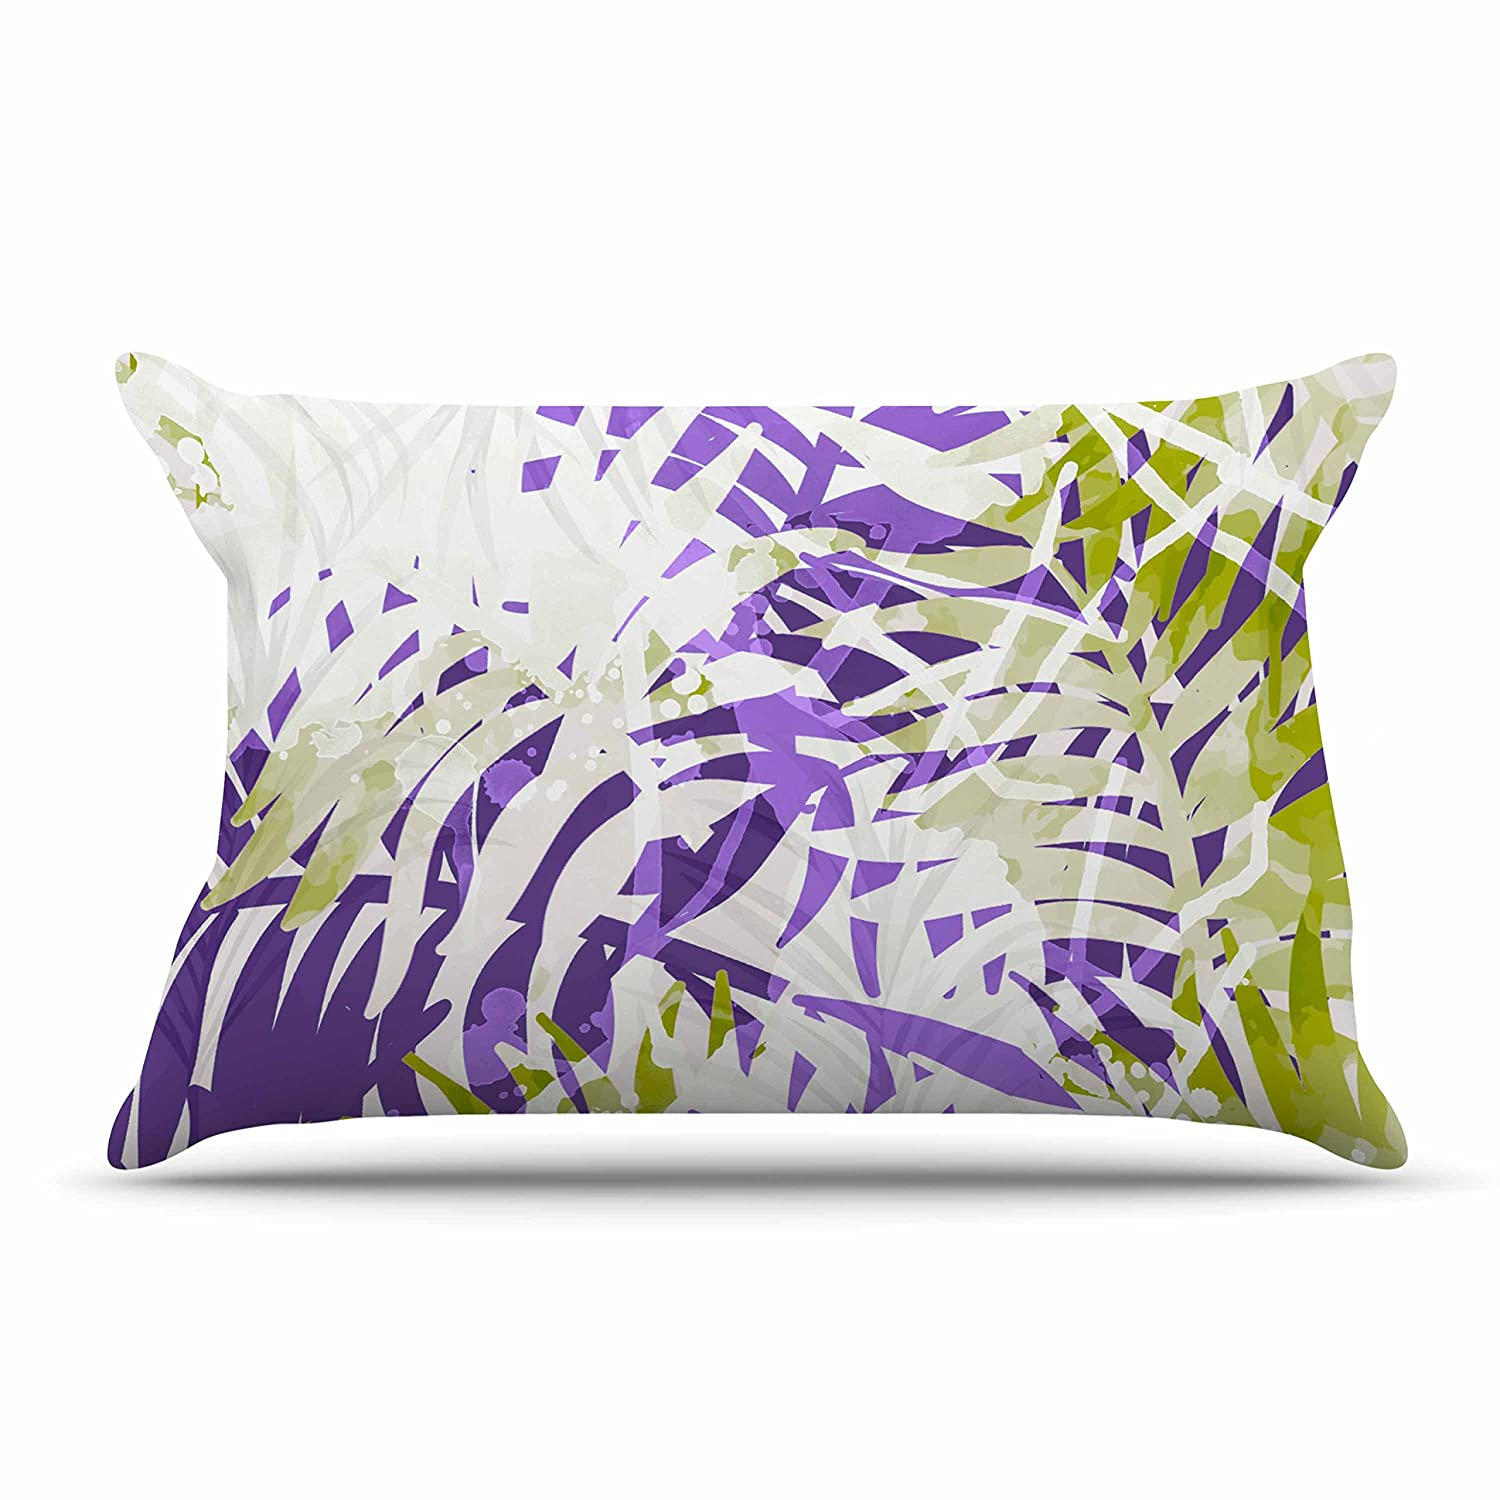 Kess InHouse Carol Schiff Four Seasons-Spring Lavender Green Painting Throw 80 x 60 Fleece Blanket